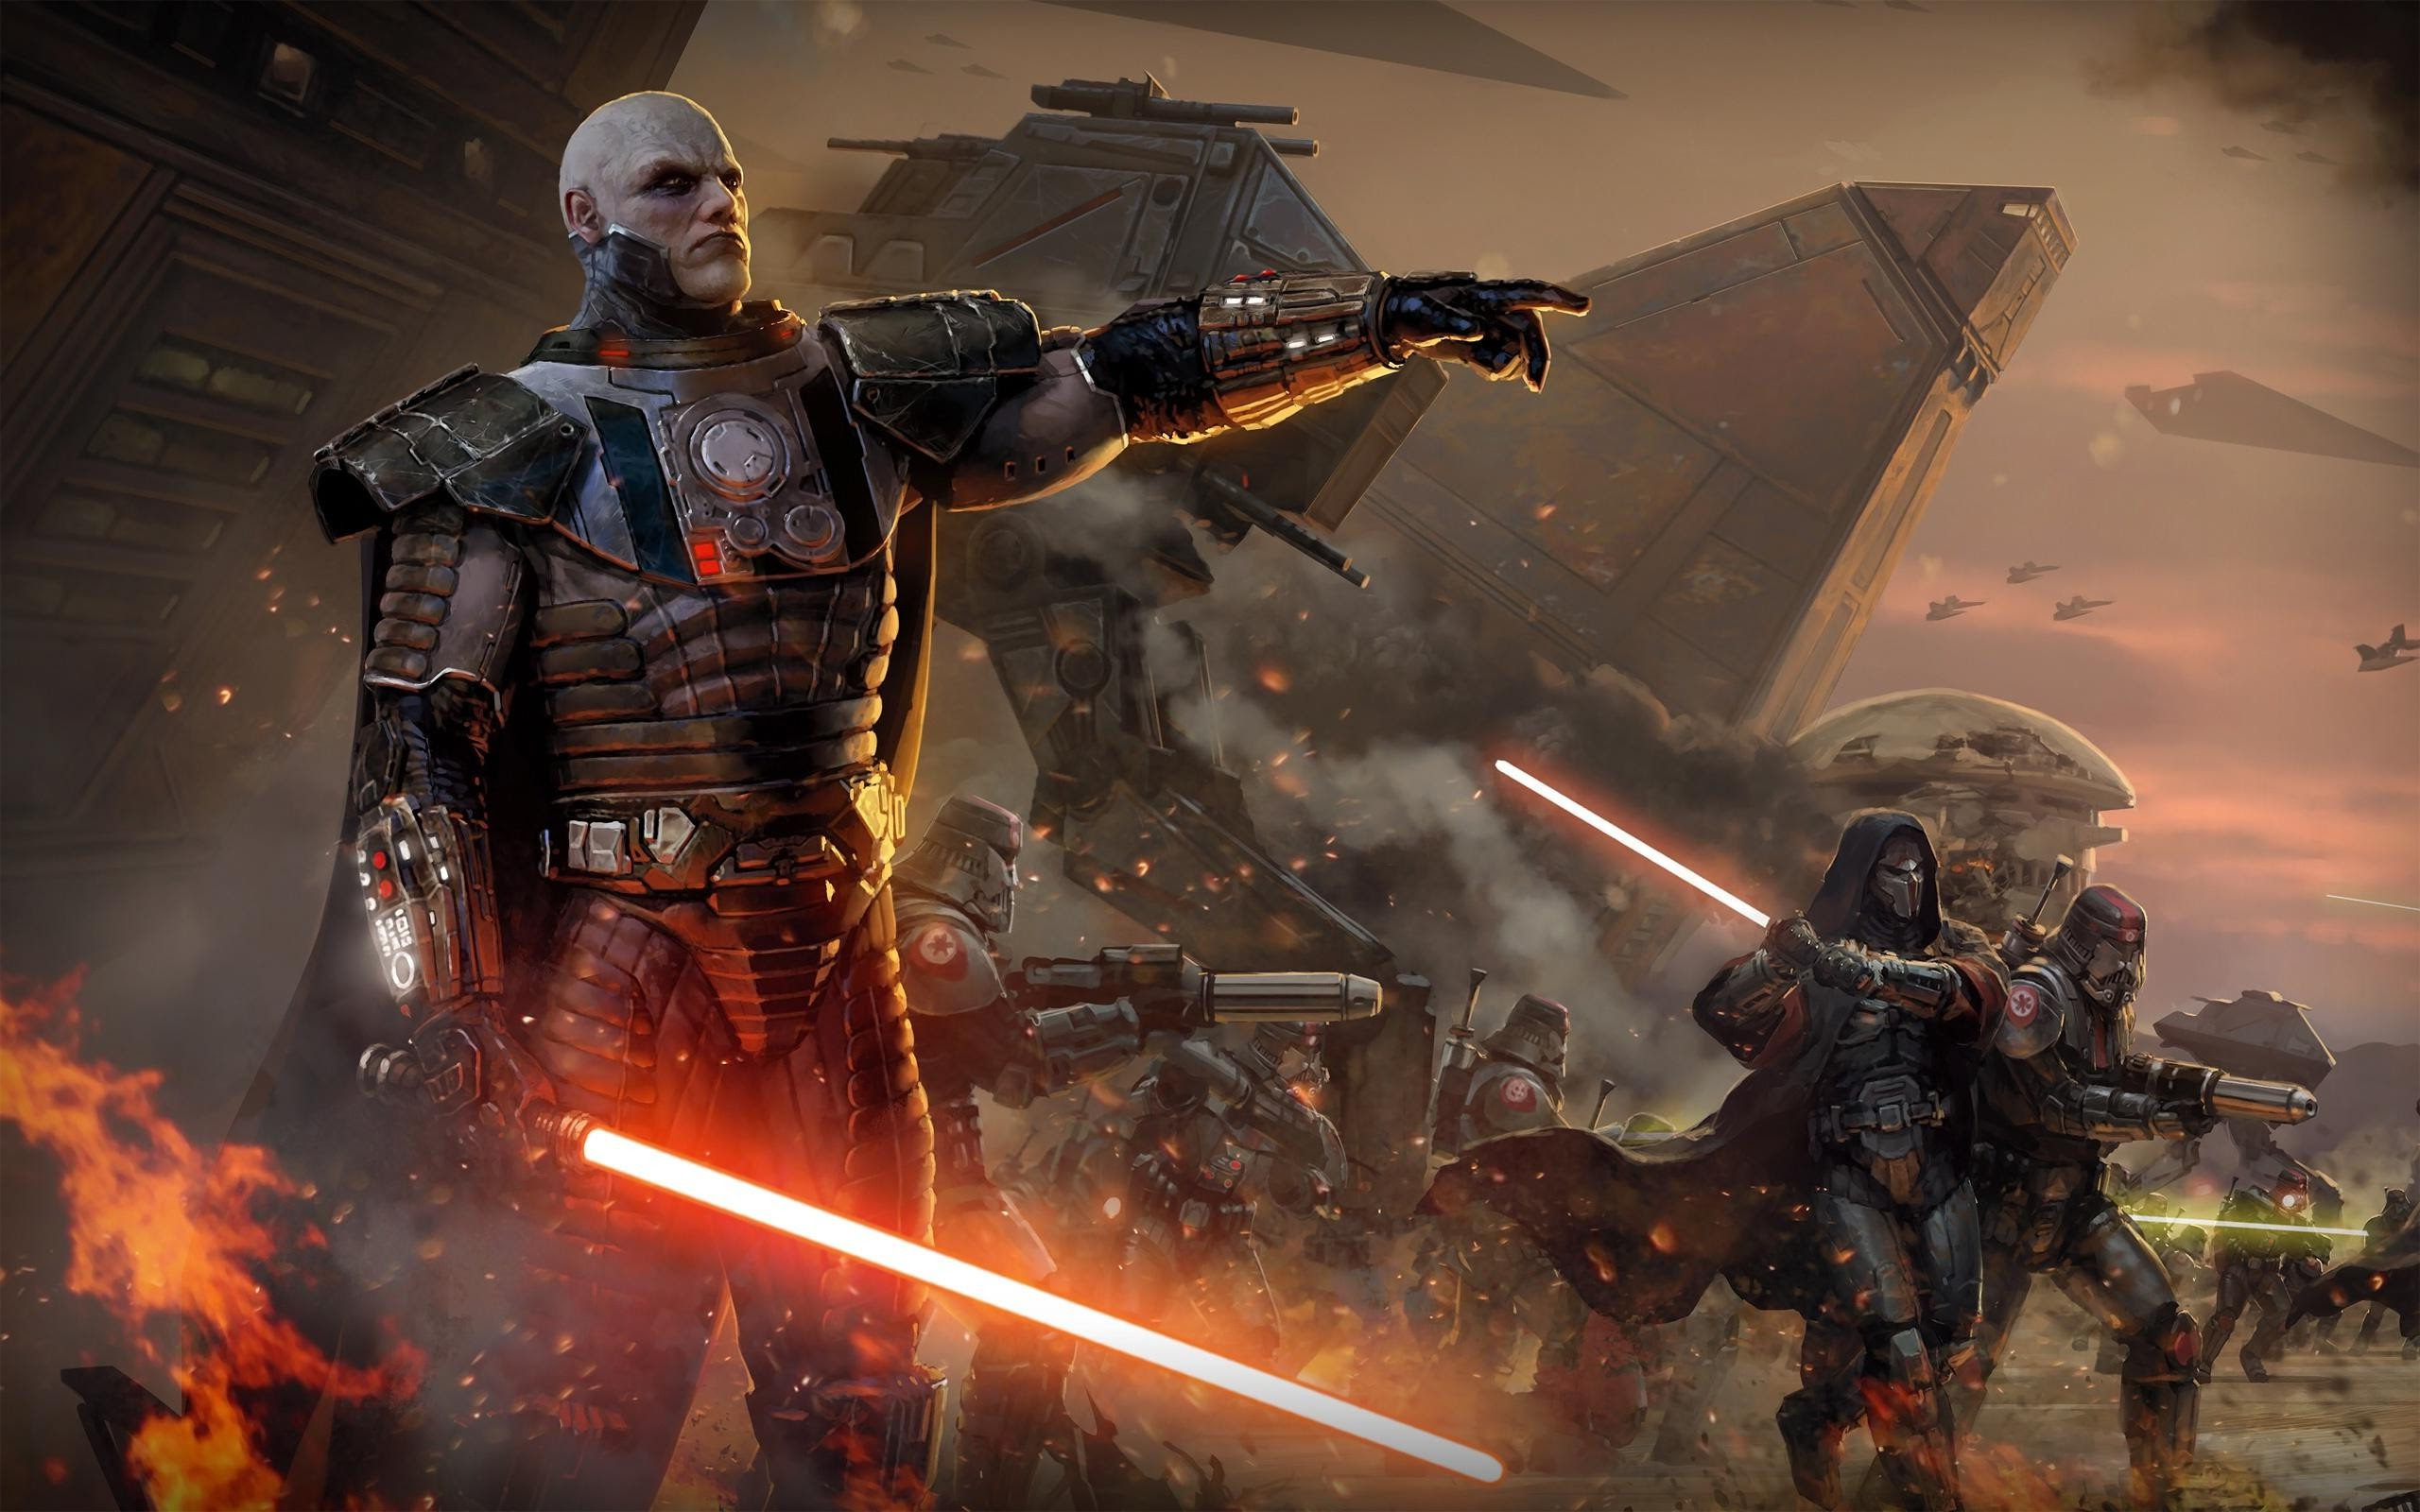 Star Wars Star Wars The Old Republic Lightsaber Wallpapers Hd